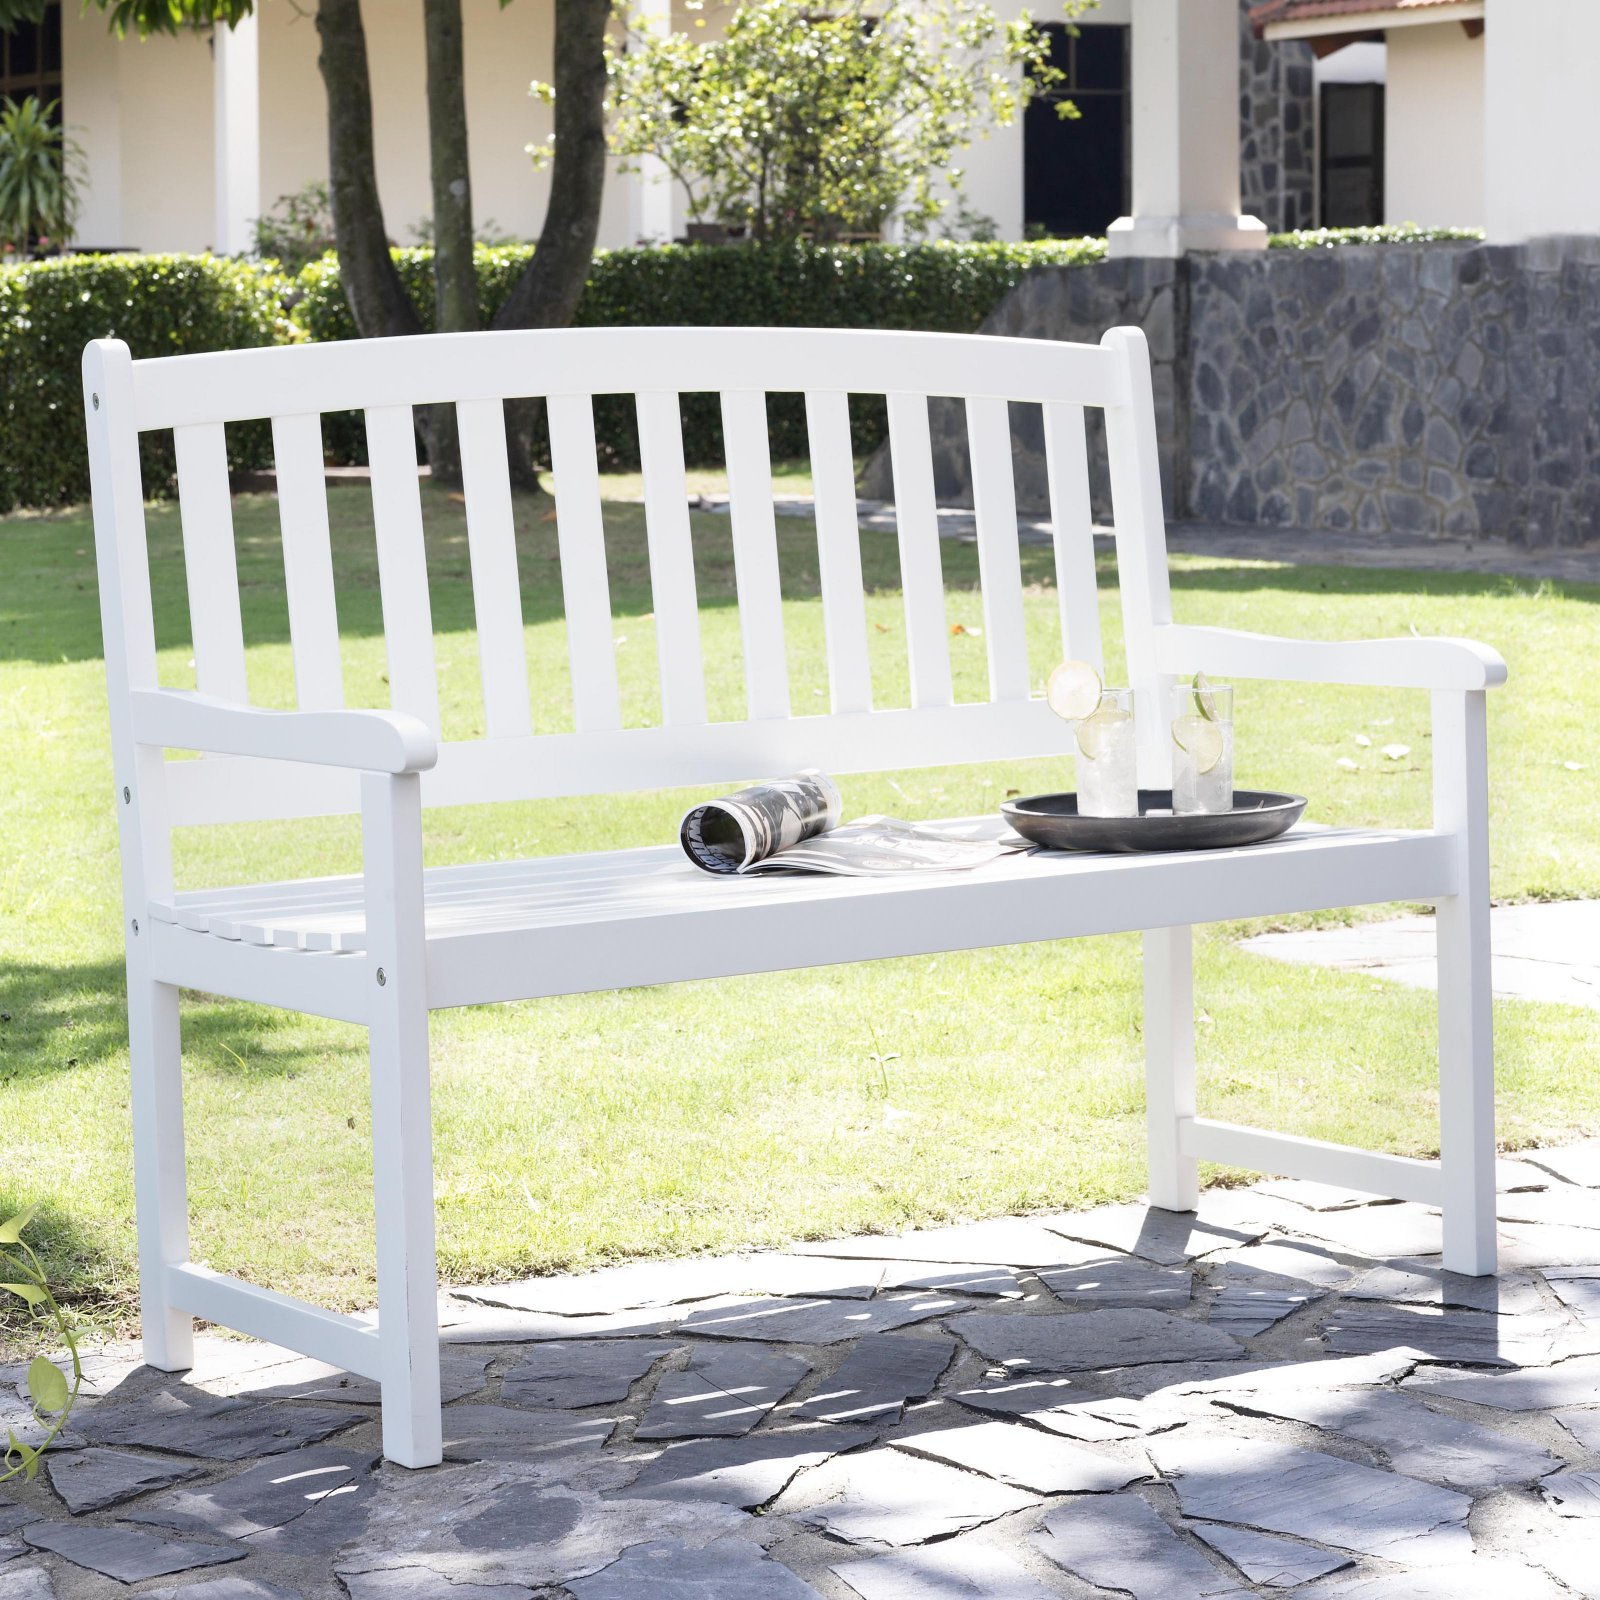 Coral Coast Pleasant Bay Curved Slat-Back Outdoor Wood Bench White by Nghia Son Wooden Furniture Co